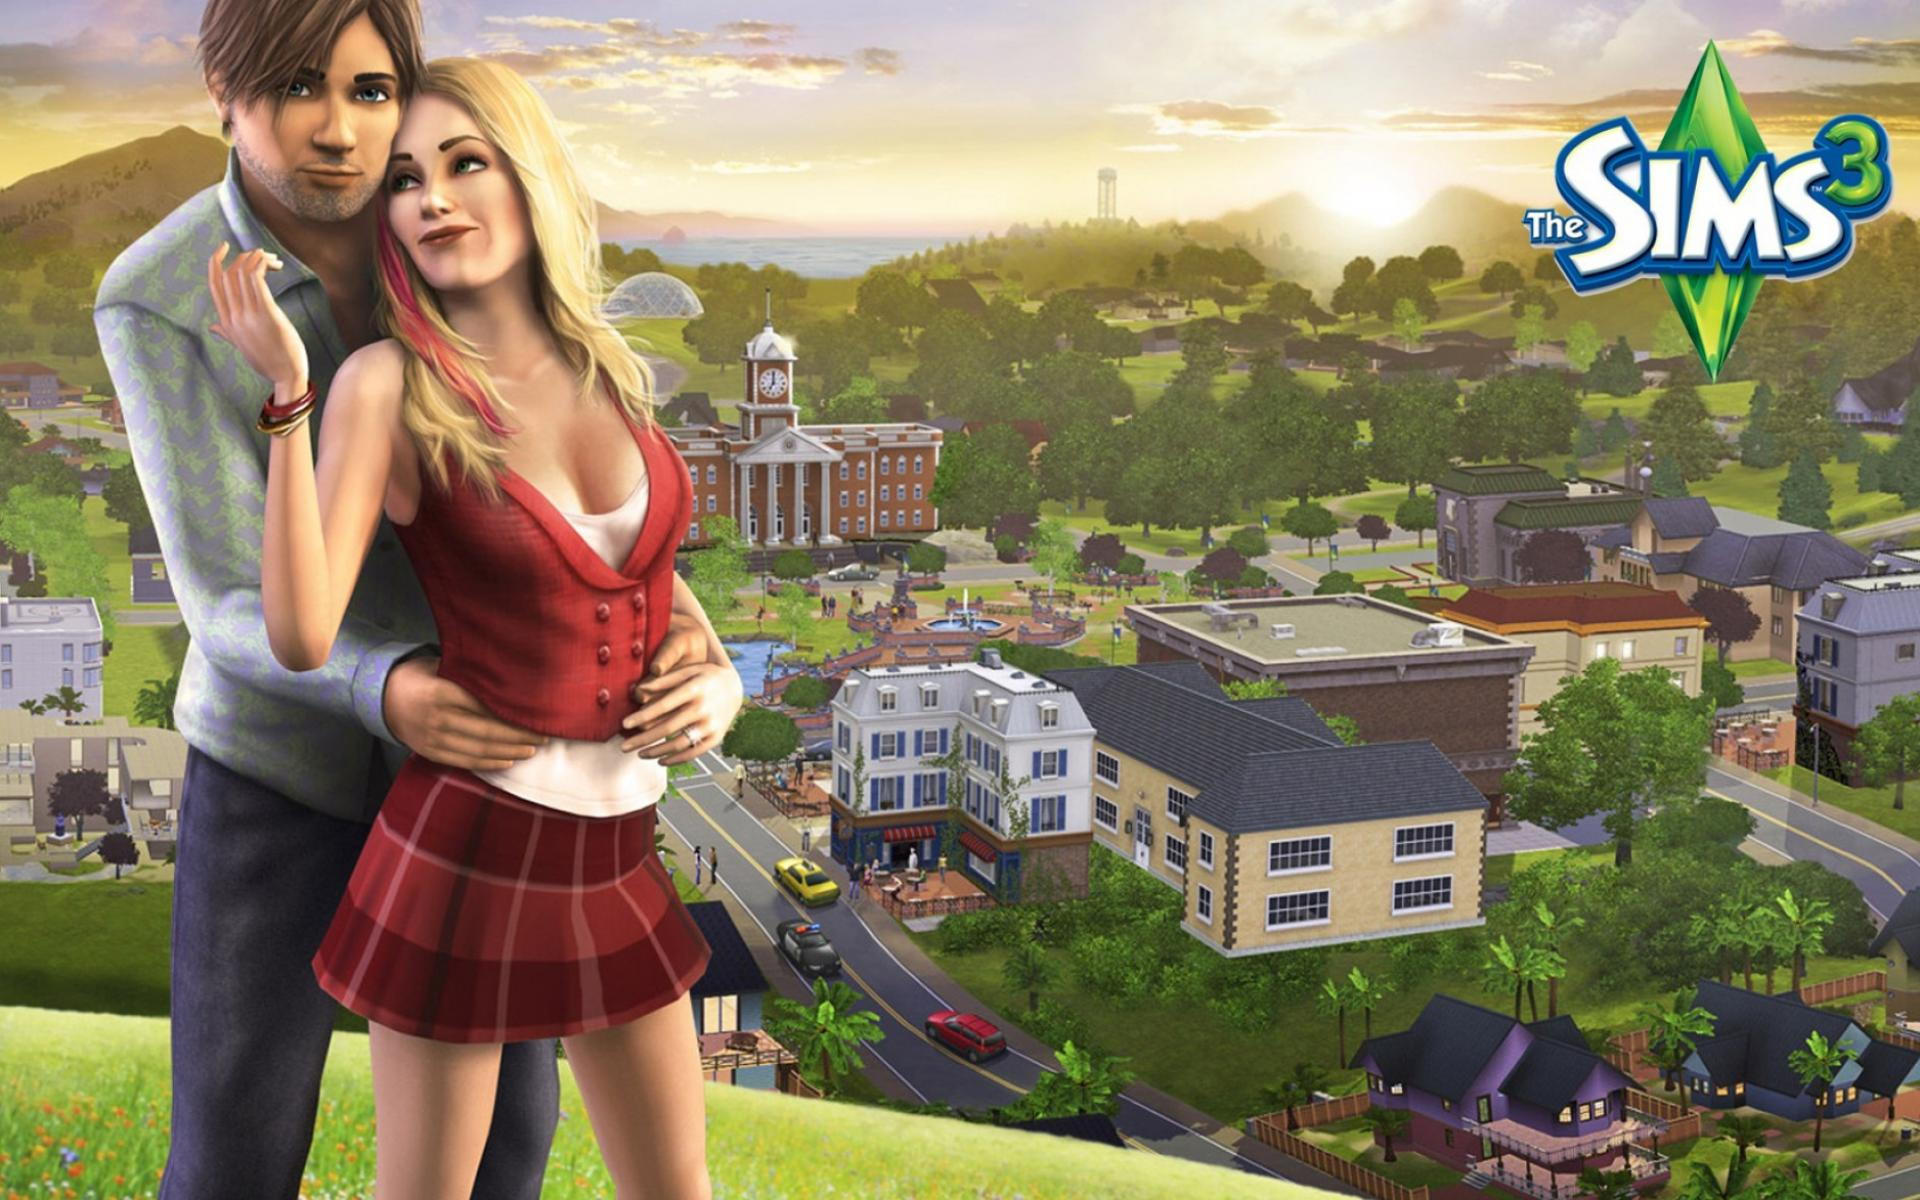 The Sims 3 wallpaper 7